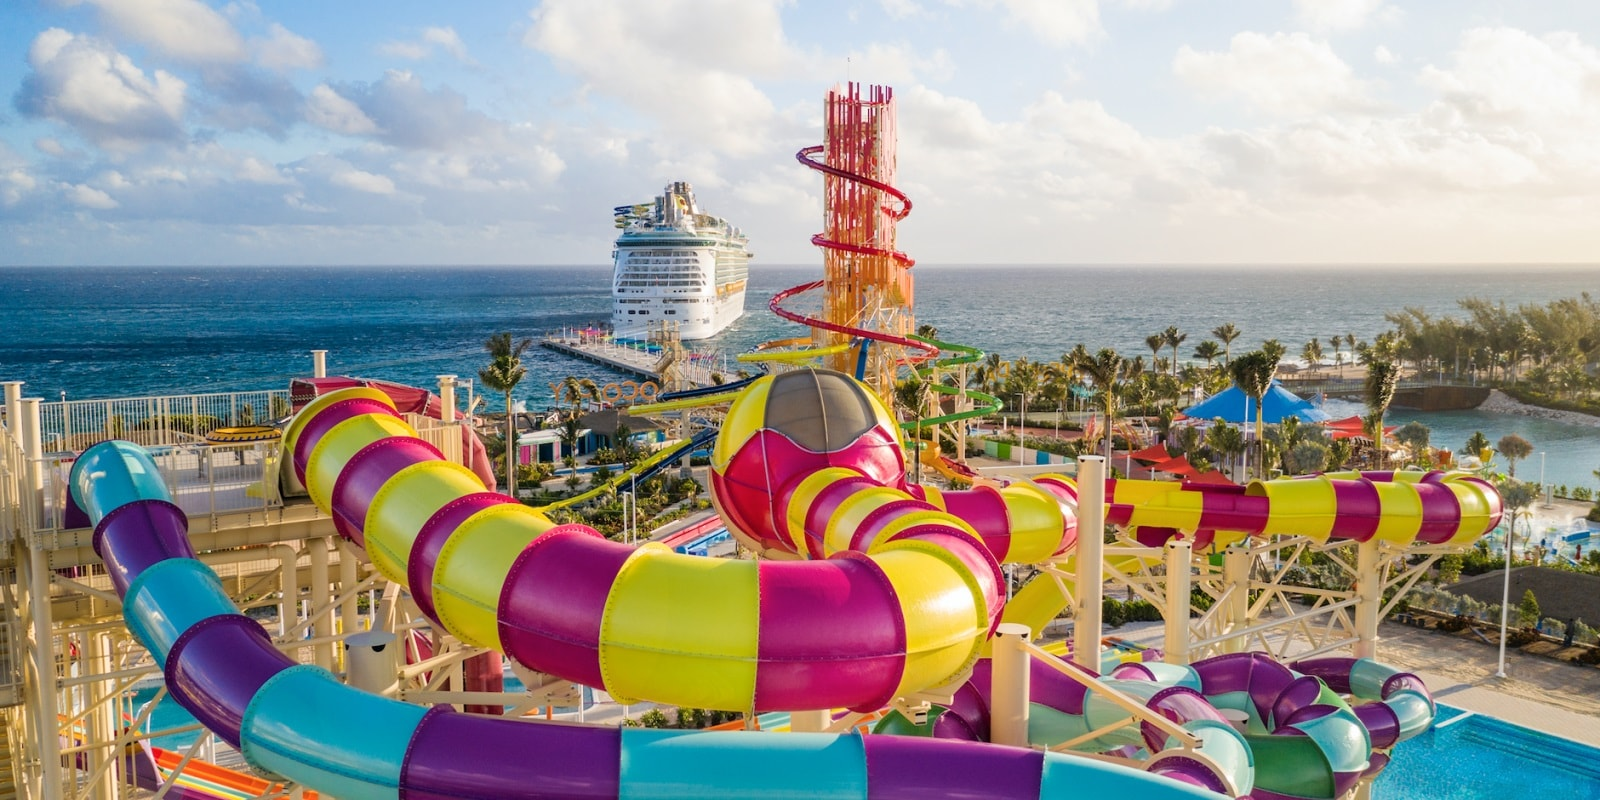 The company spent $250 million on the island, installing features such as a 135-foot-tall waterslide and a 1,600-foot-long zipline course. Photo Courtesy-Royal Caribbean